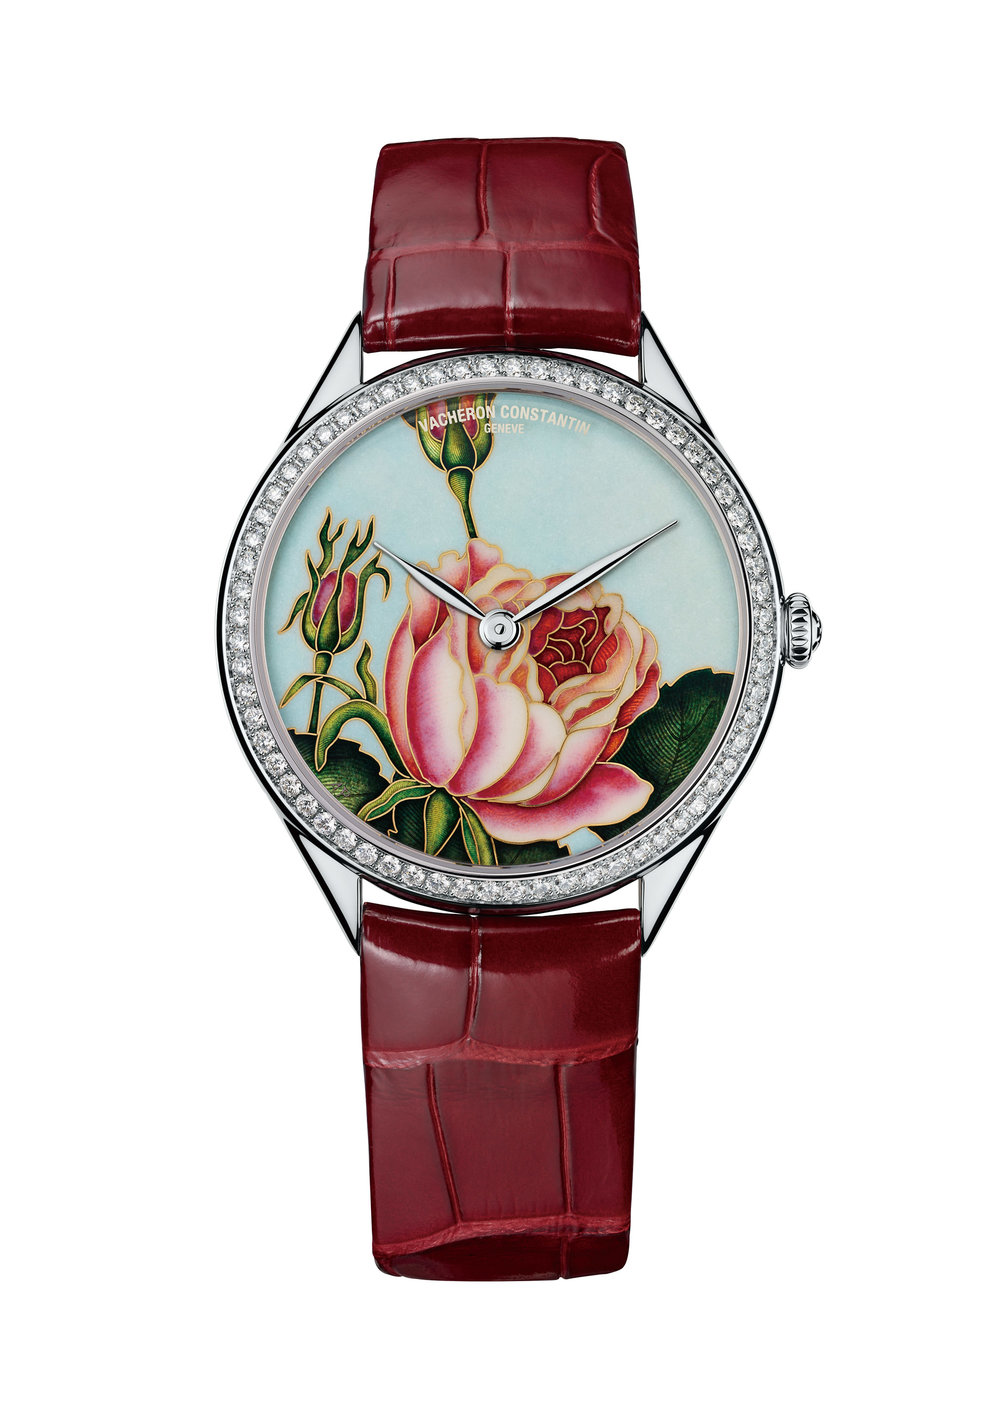 Vacheron Constantin  Métiers d'Art Florilège - Rosa Centifolia Watch Ref. 82550/000G-9919, $152,000  First debuted at SIHH 2013, Vacheron Constantin's Métiers d'Art Florilège collection is a study in feminine florals. Drawing on the artistic techniques of enameling, mechanical engraving, and gem setting, the dial features an elaborately detailed flower, reminiscent of a classical painting, surrounded by 60 baguette-cut diamonds. Water resistant to 30 metres. Power reserve 65 hours. Limited edition of 20 pieces.  At Palladio, (604) 685-3885, vacheron-constantin.com